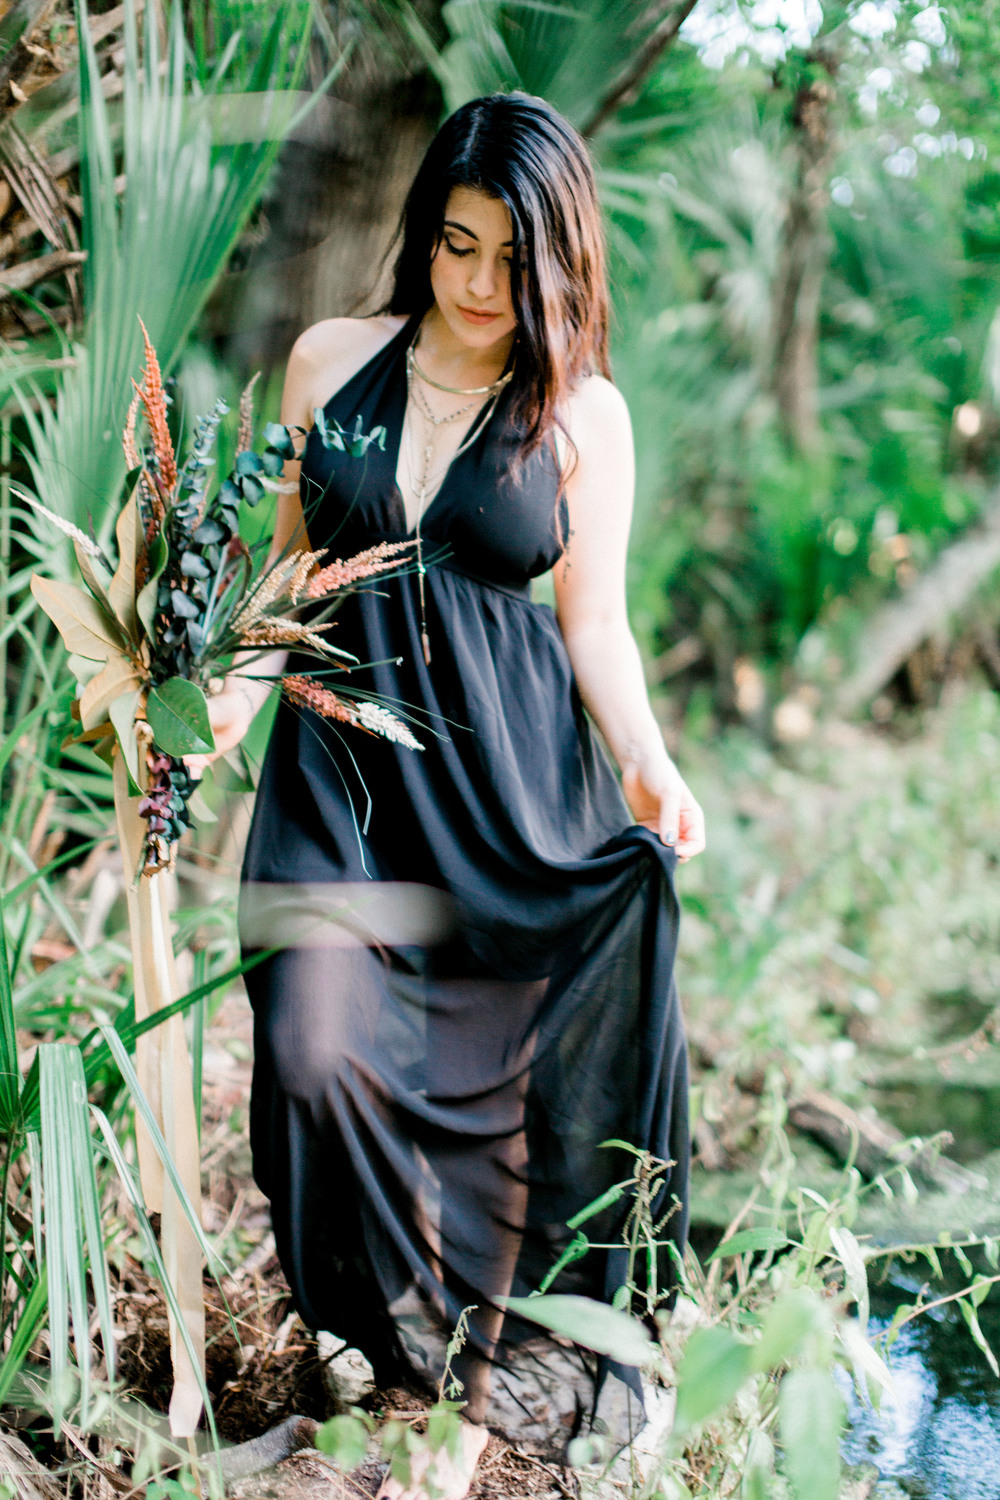 wekiva springs orlando florida model in dress photo